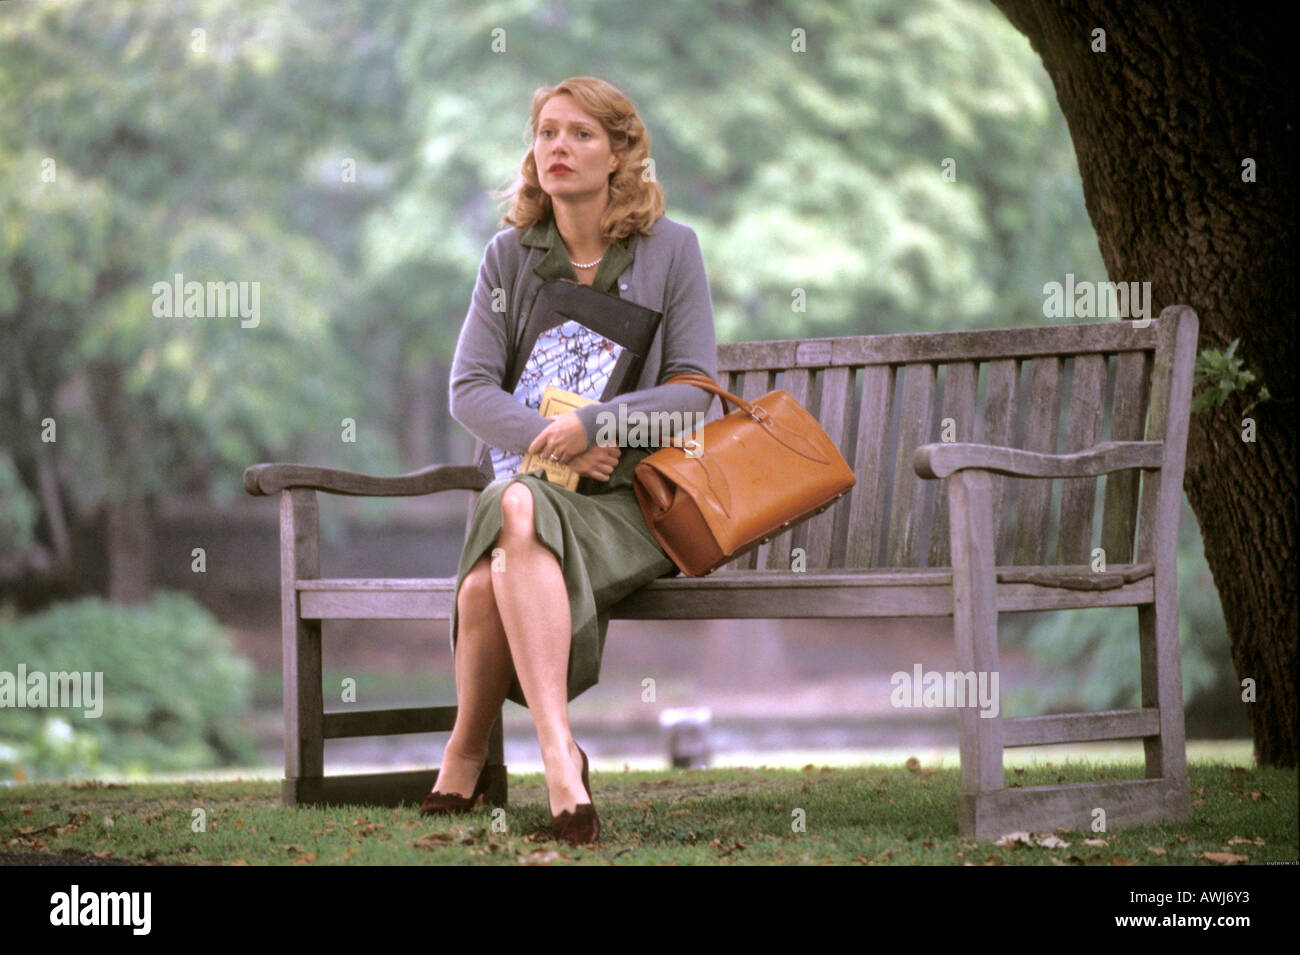 Sylvia 2003 Icon Film With Gwyneth Paltrow Stock Photo